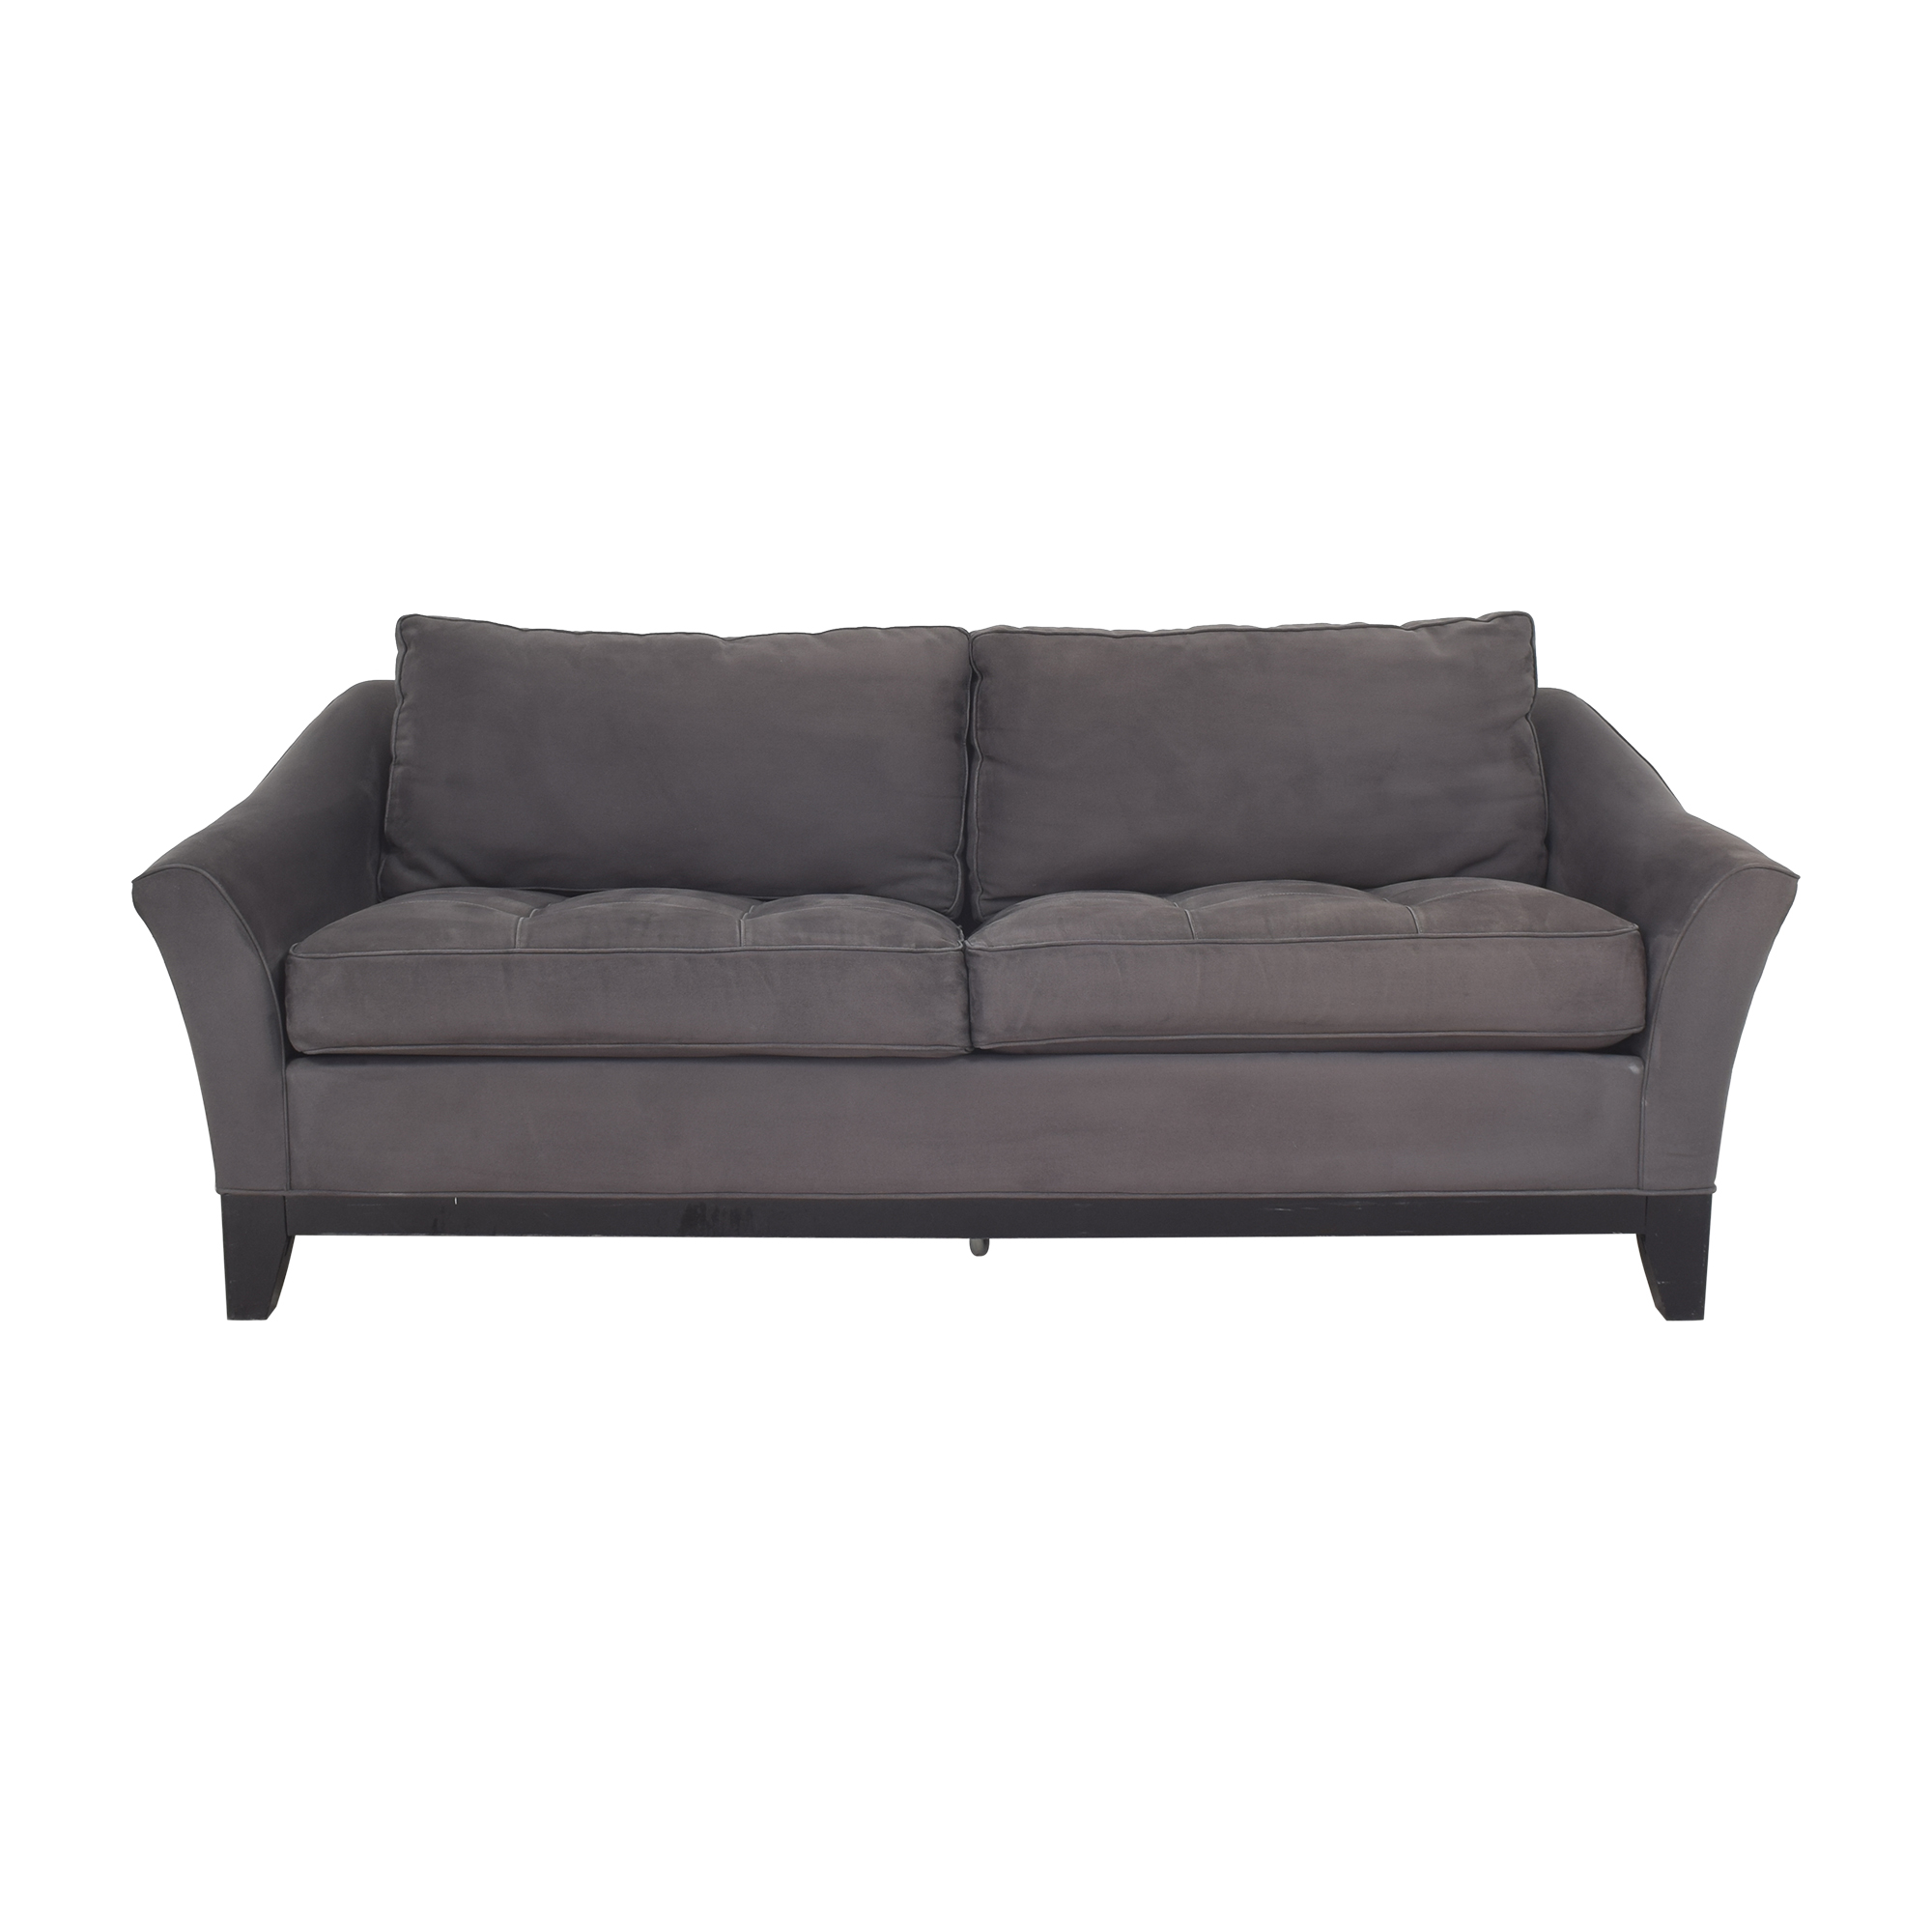 Raymour & Flanigan Raymour & Flanigan Rory Sleeper Sofa used